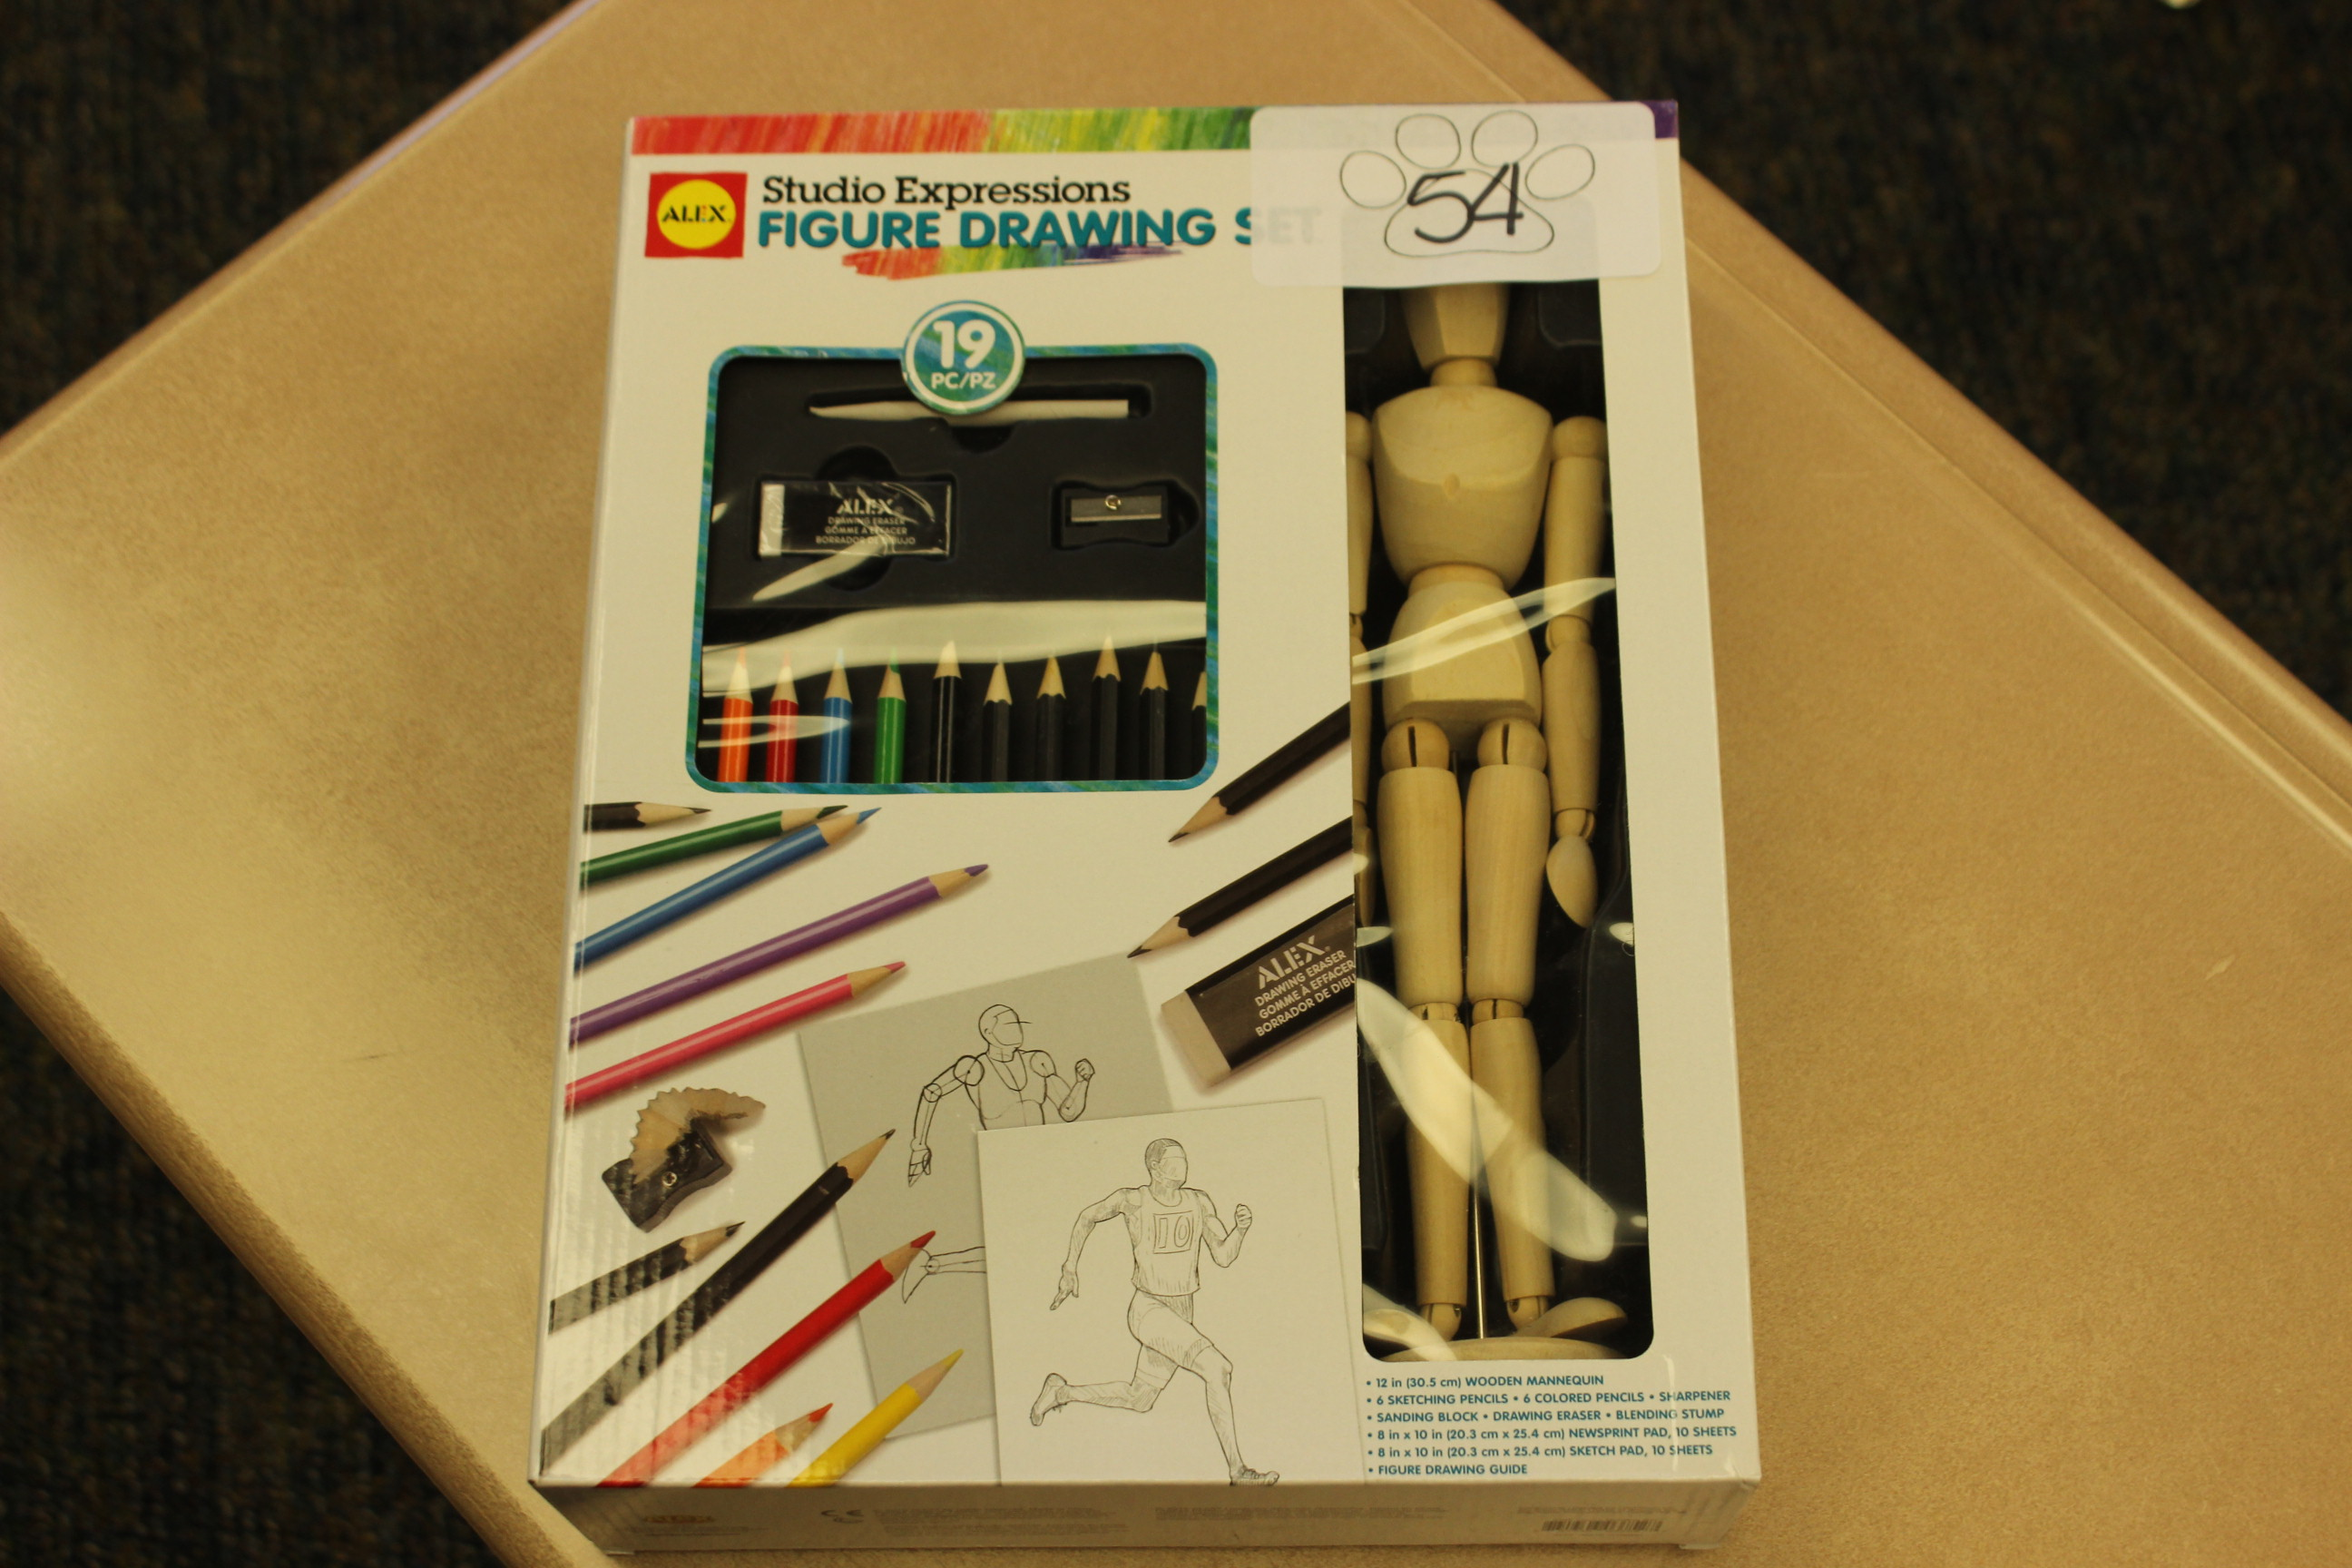 54 Figure Drawing Set